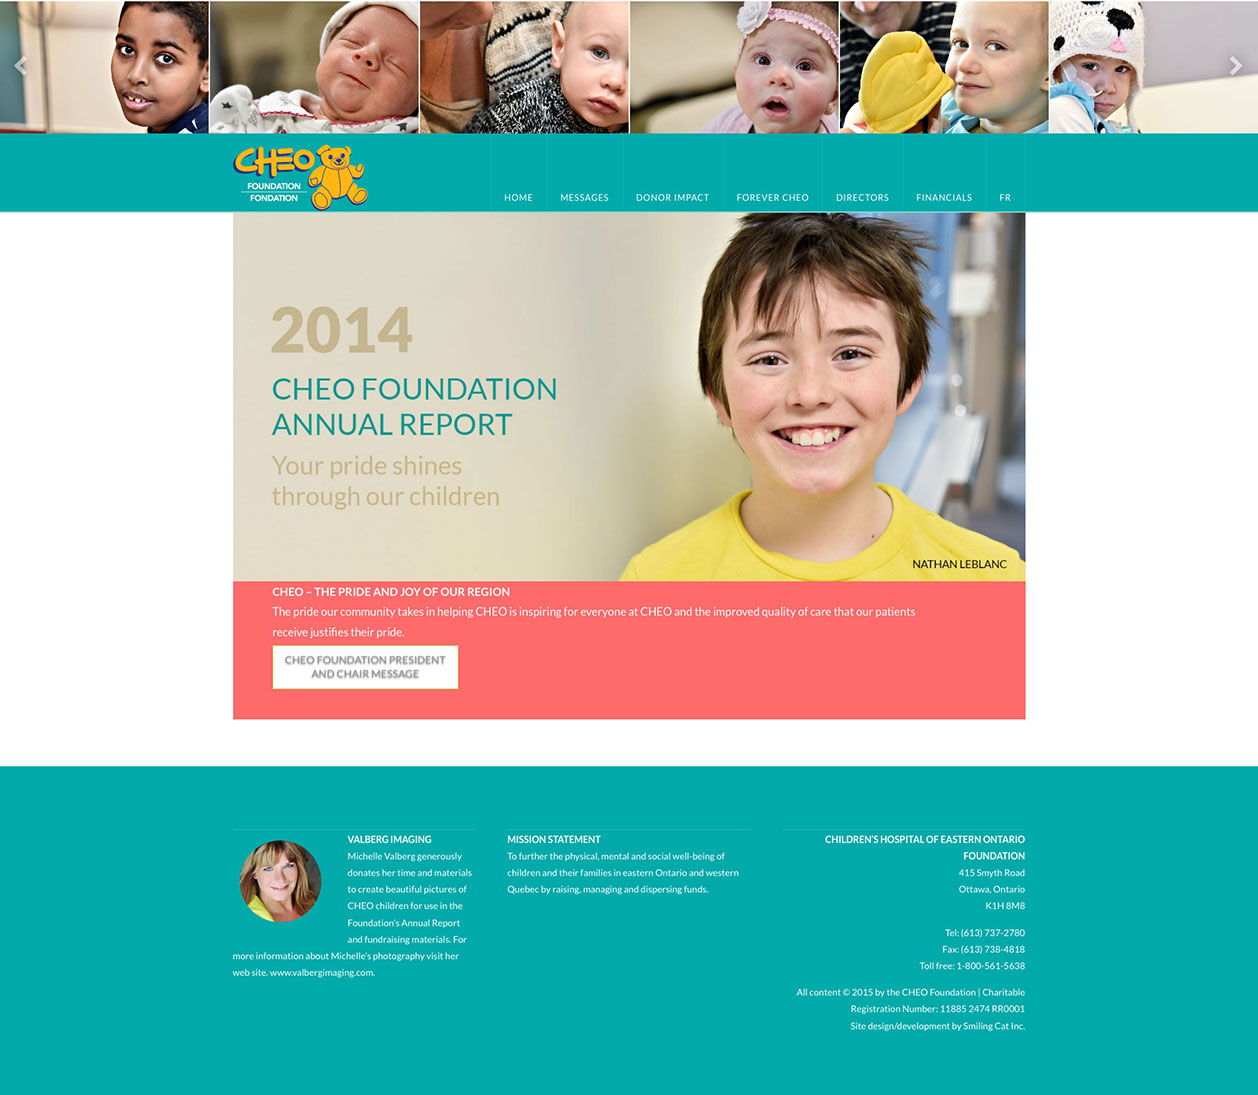 CHEO Foundation Annual Report